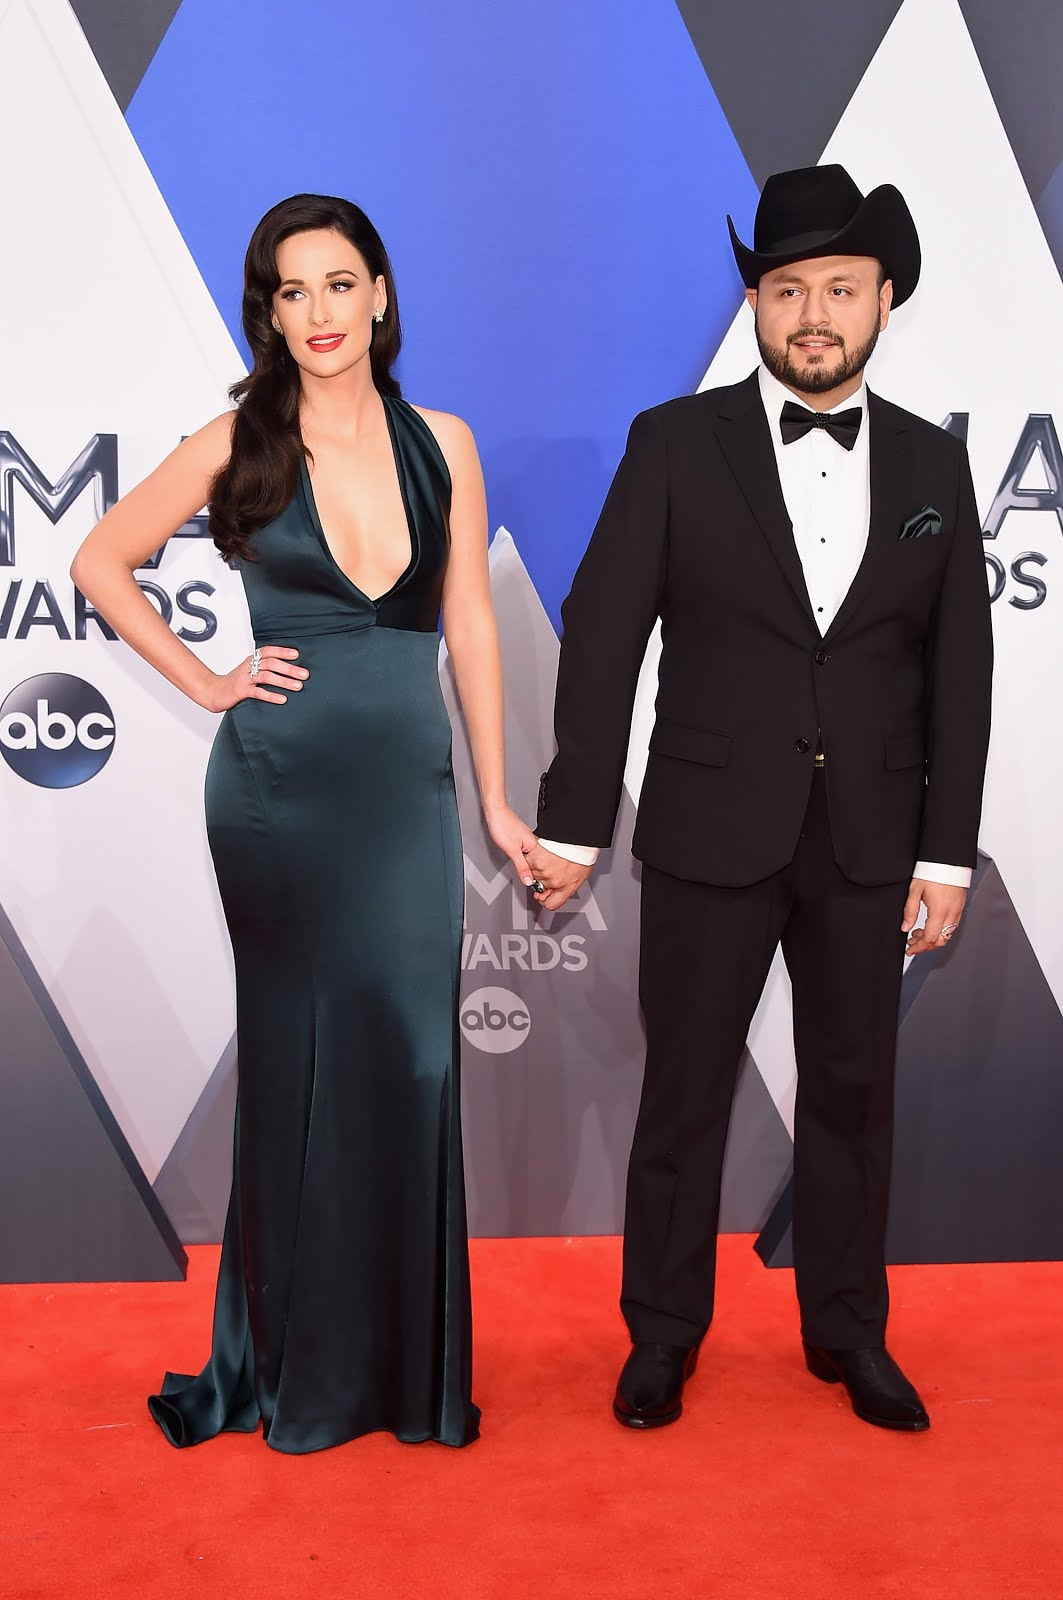 Misa Arriaga Wiki Biography Age Wife Kacey Musgraves Leaves Band Parents Twitter Space Cowboy Ncert Point Wiki Biography Net Worth